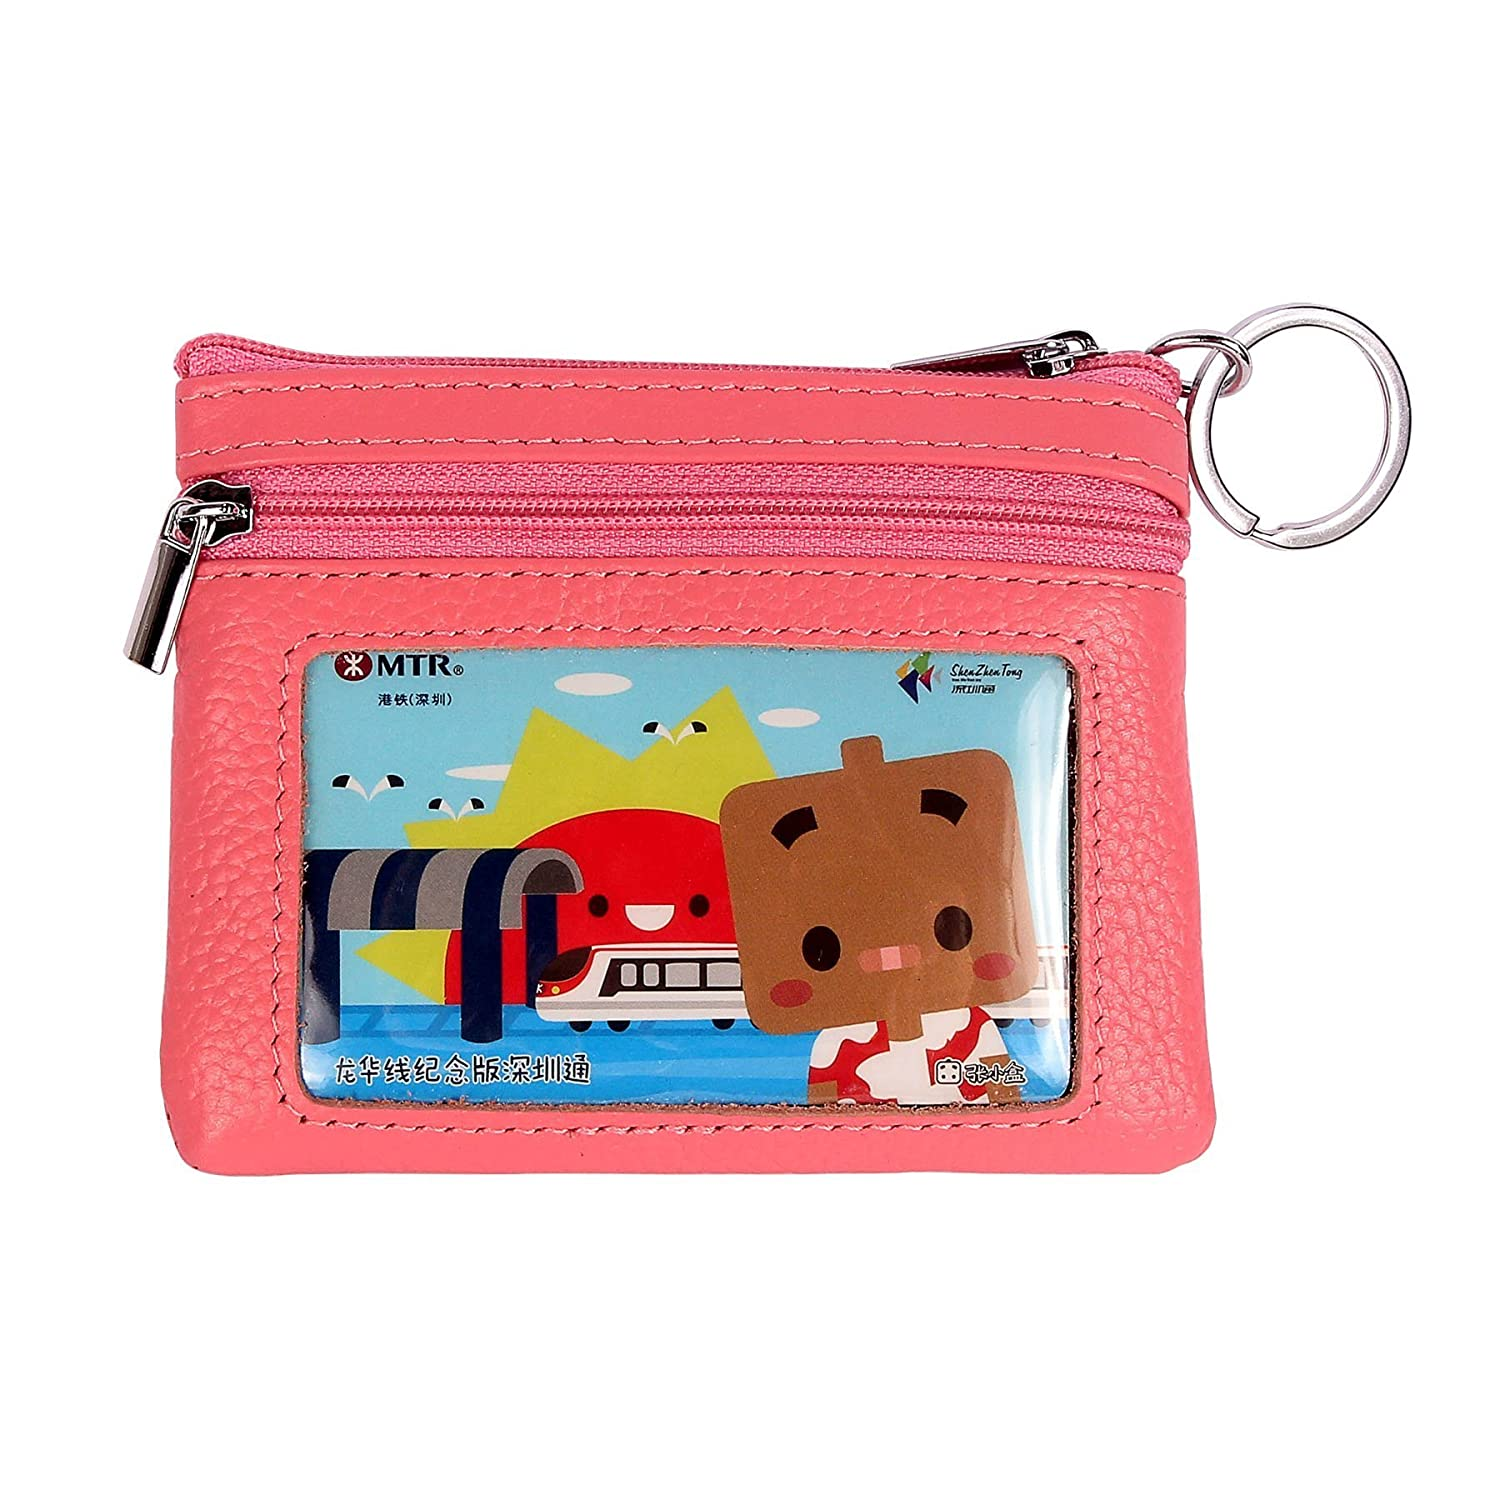 9b23ccce58e5 DukeTea Small Leather Change Purse Coin Wallet with Keychain   Zipper ID  Window LQD001-BLU